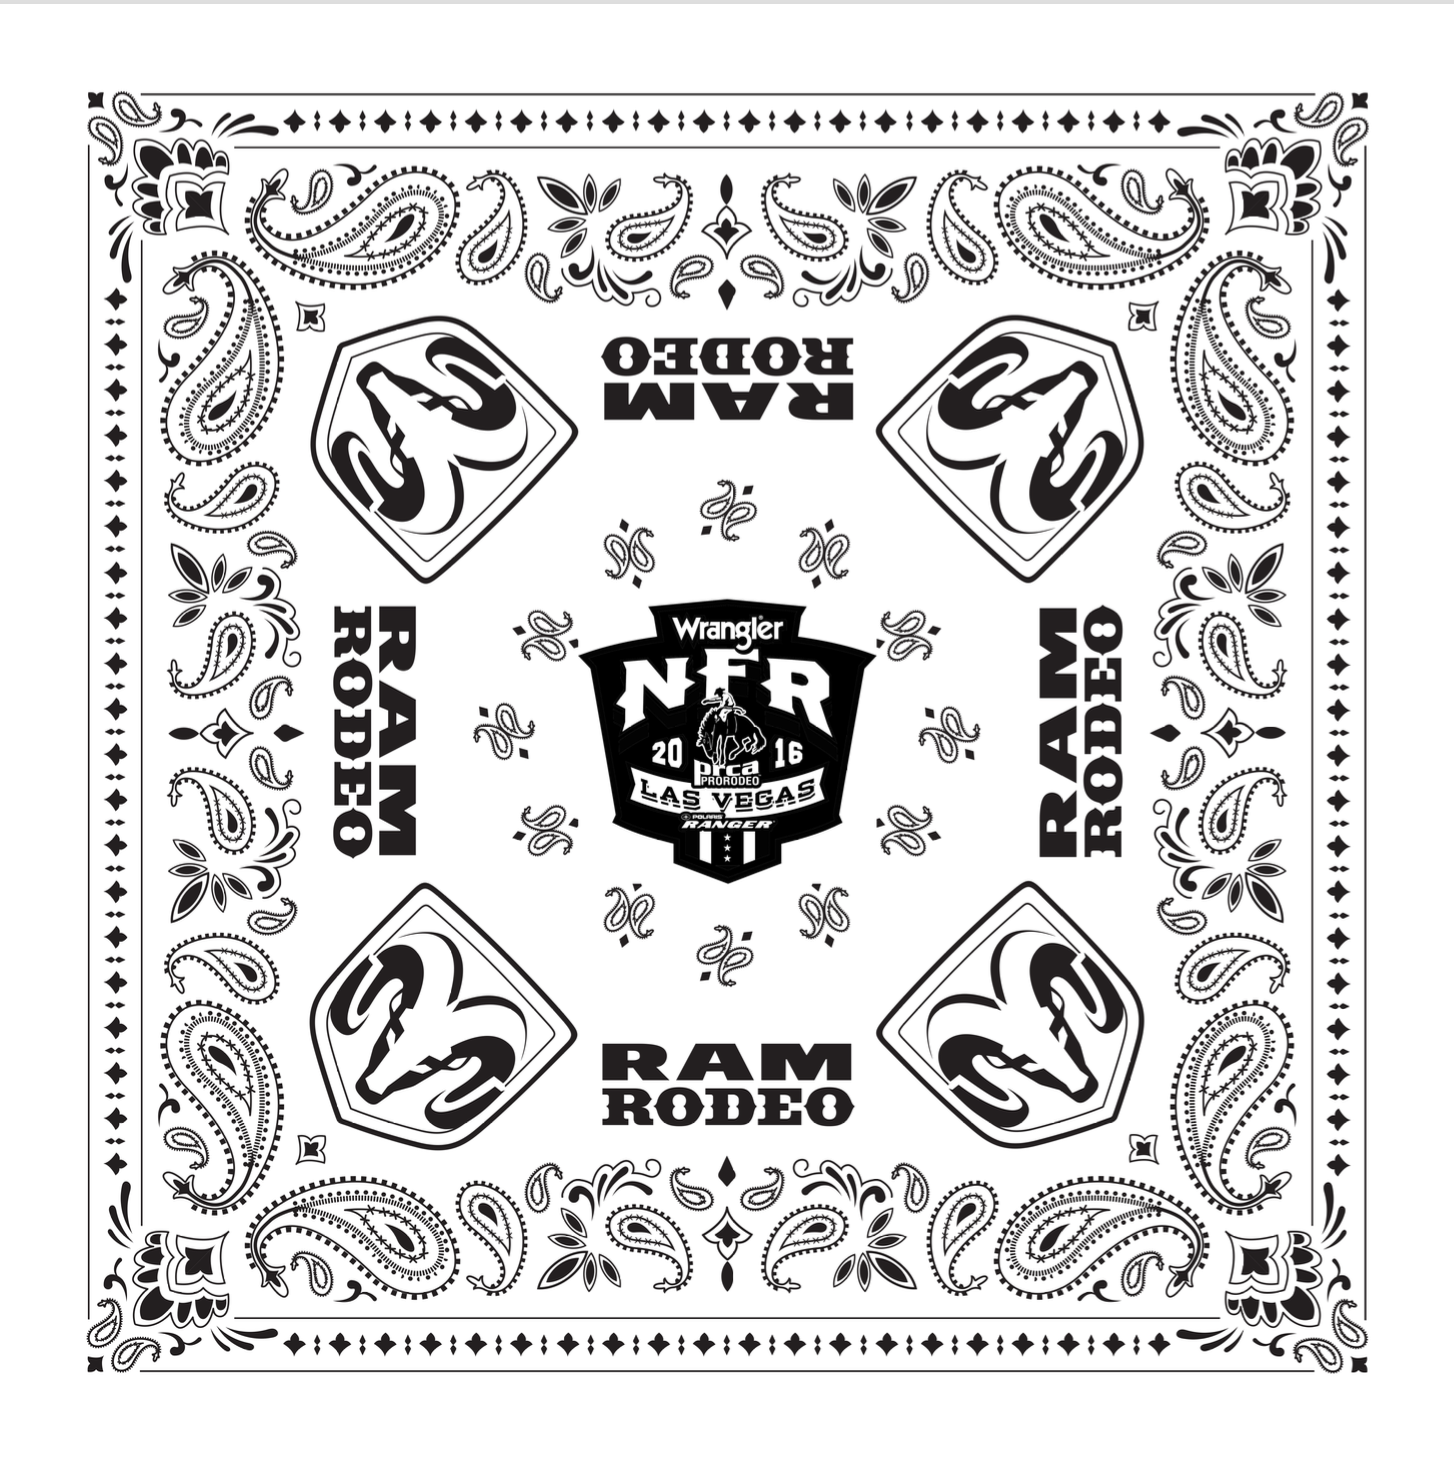 Official Dodge Ram Rodeo Bandana